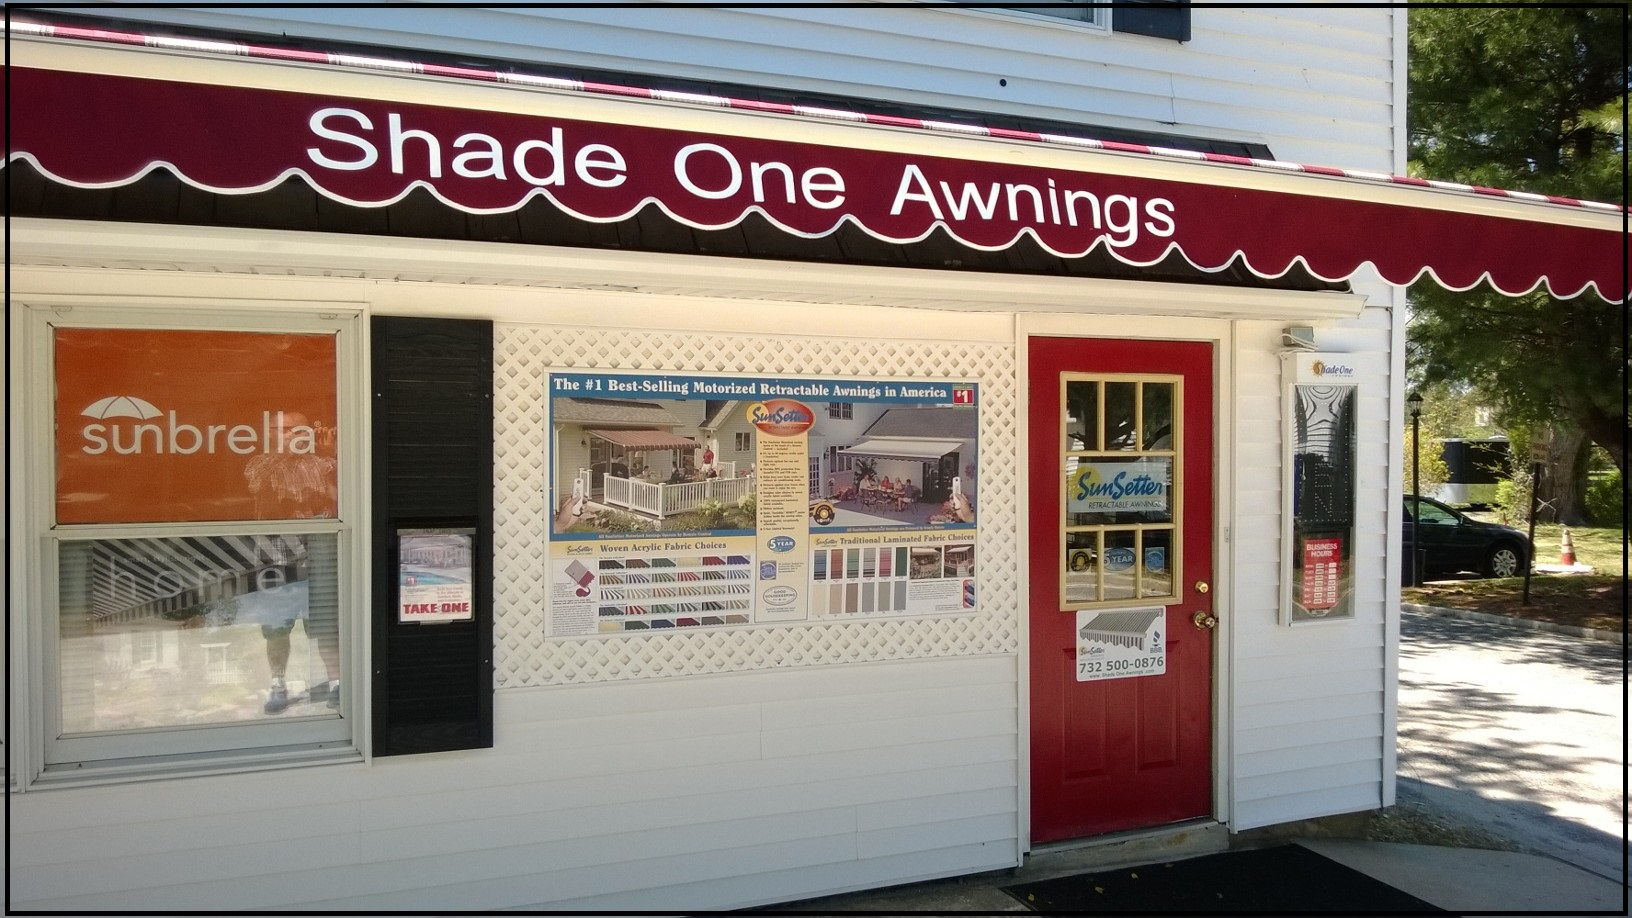 Shade One Awnings